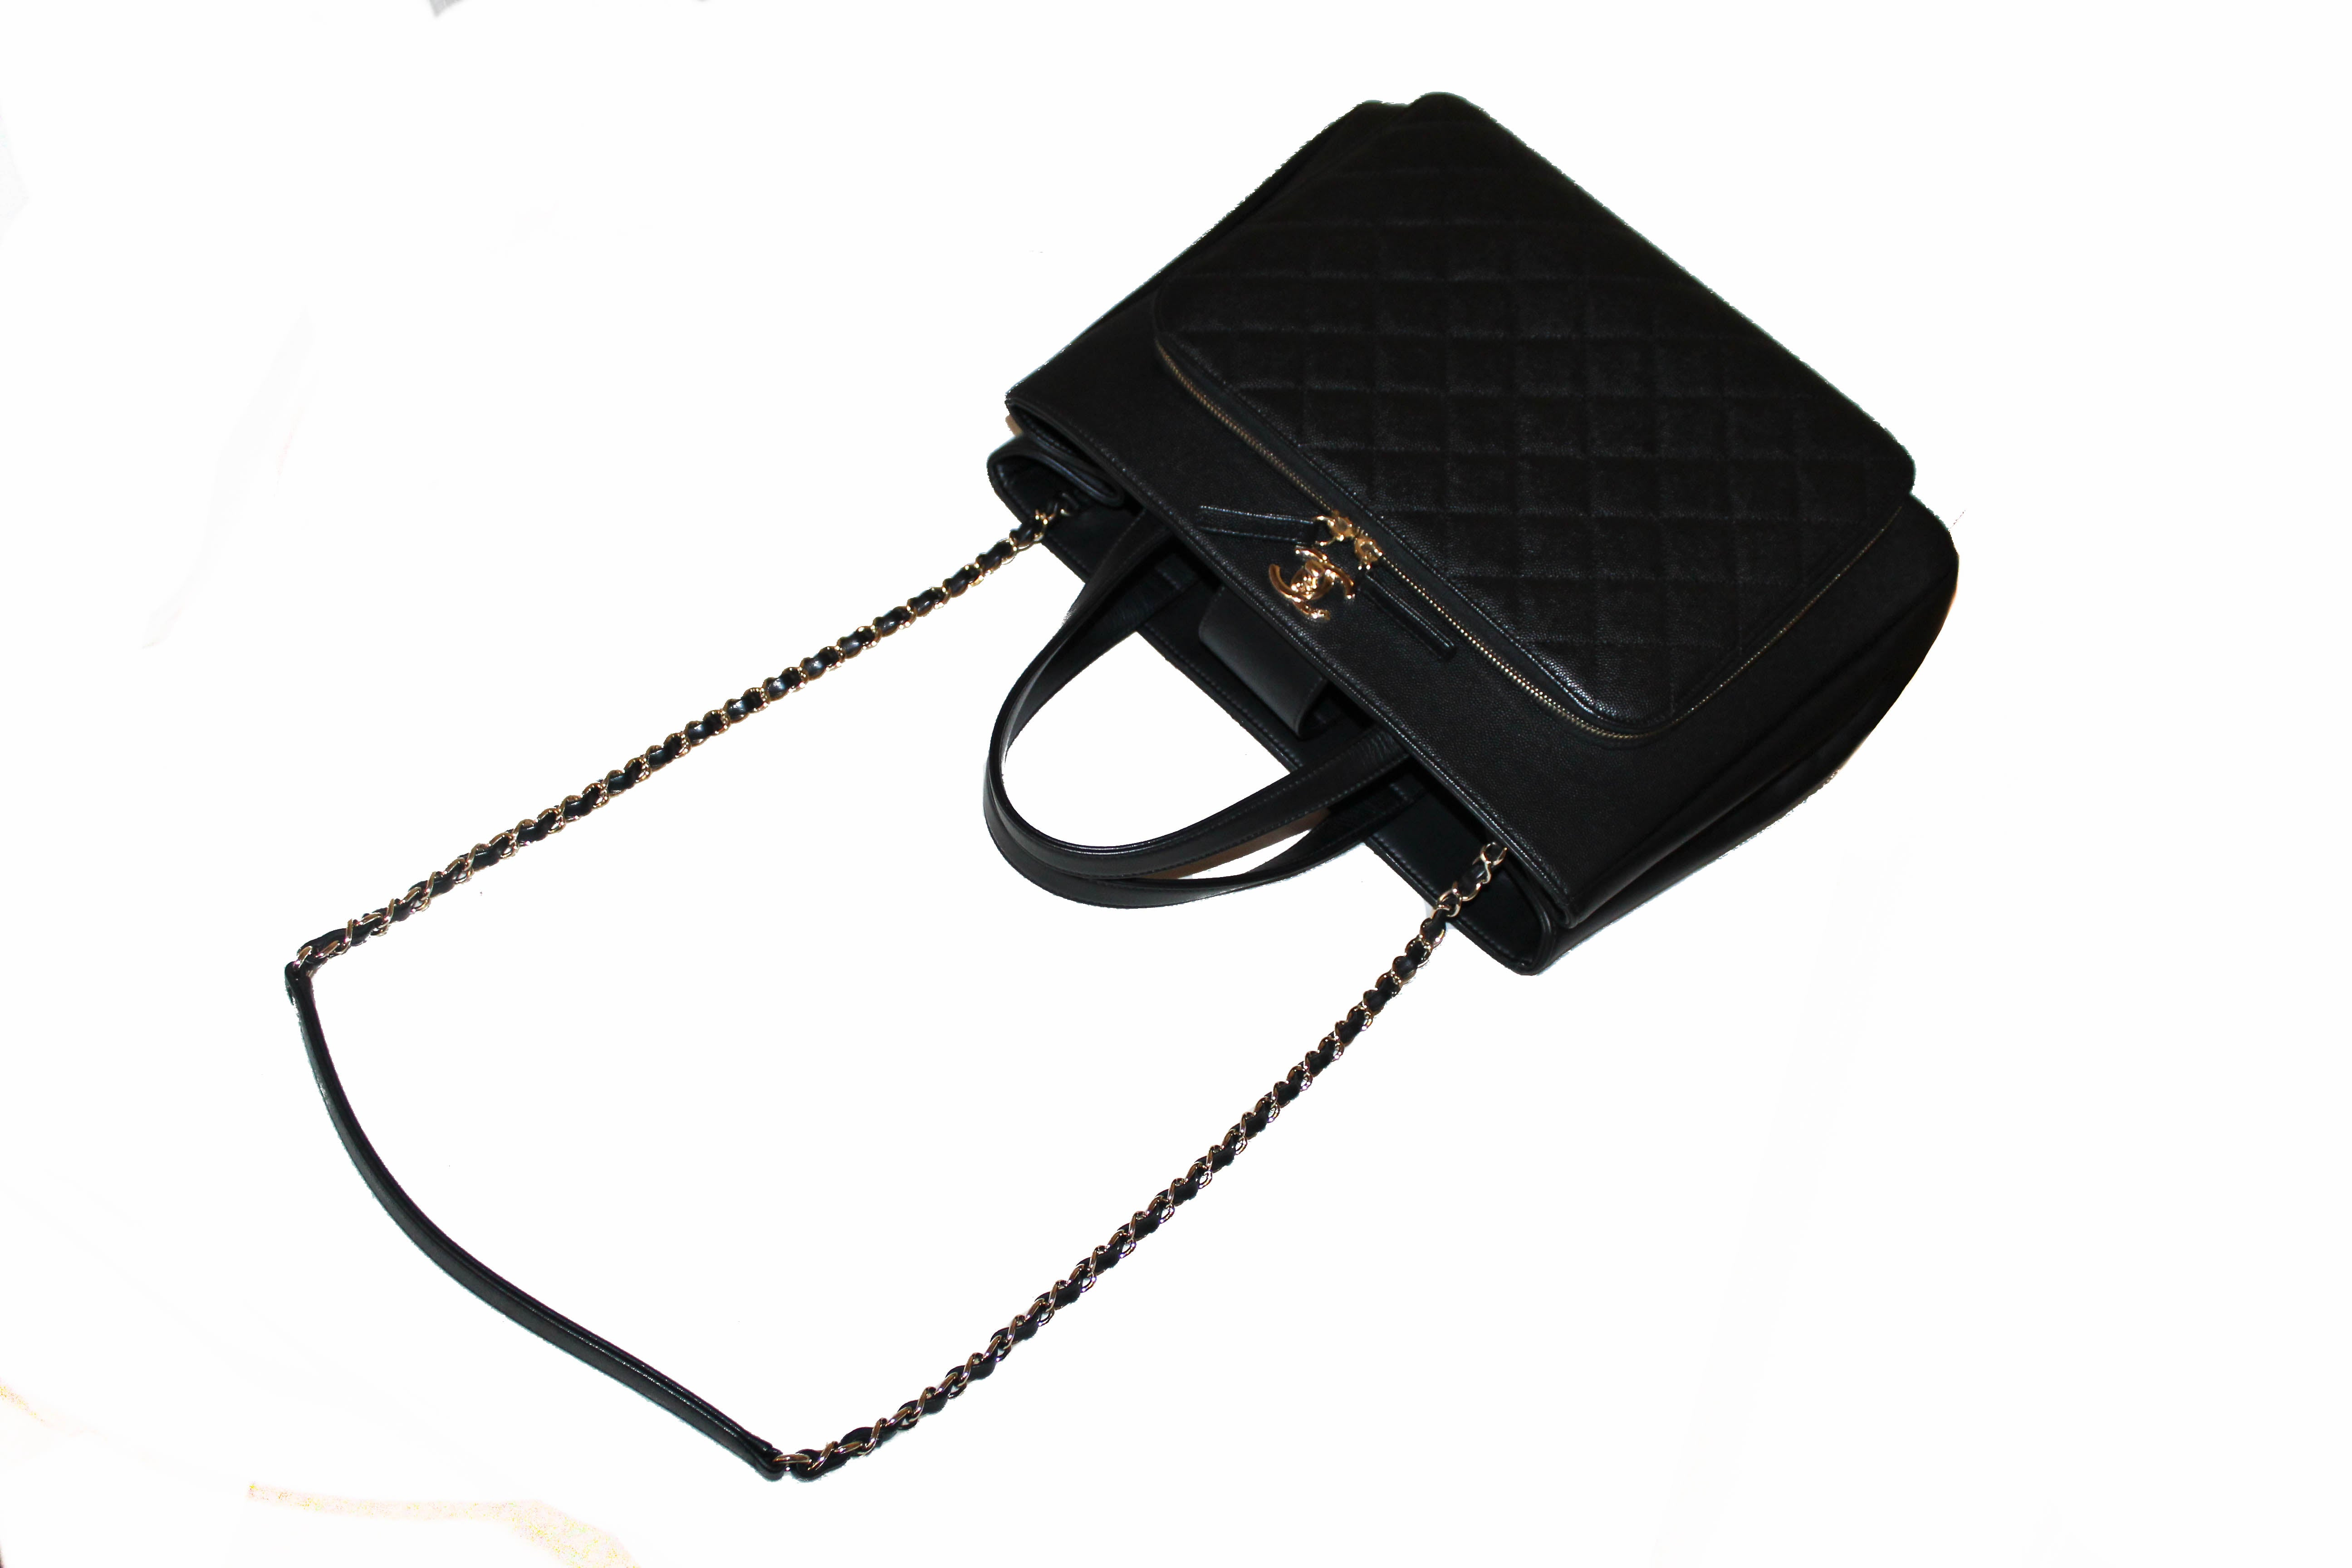 Authentic Chanel Black Caviar Leather Large Tote Shoulder Bag